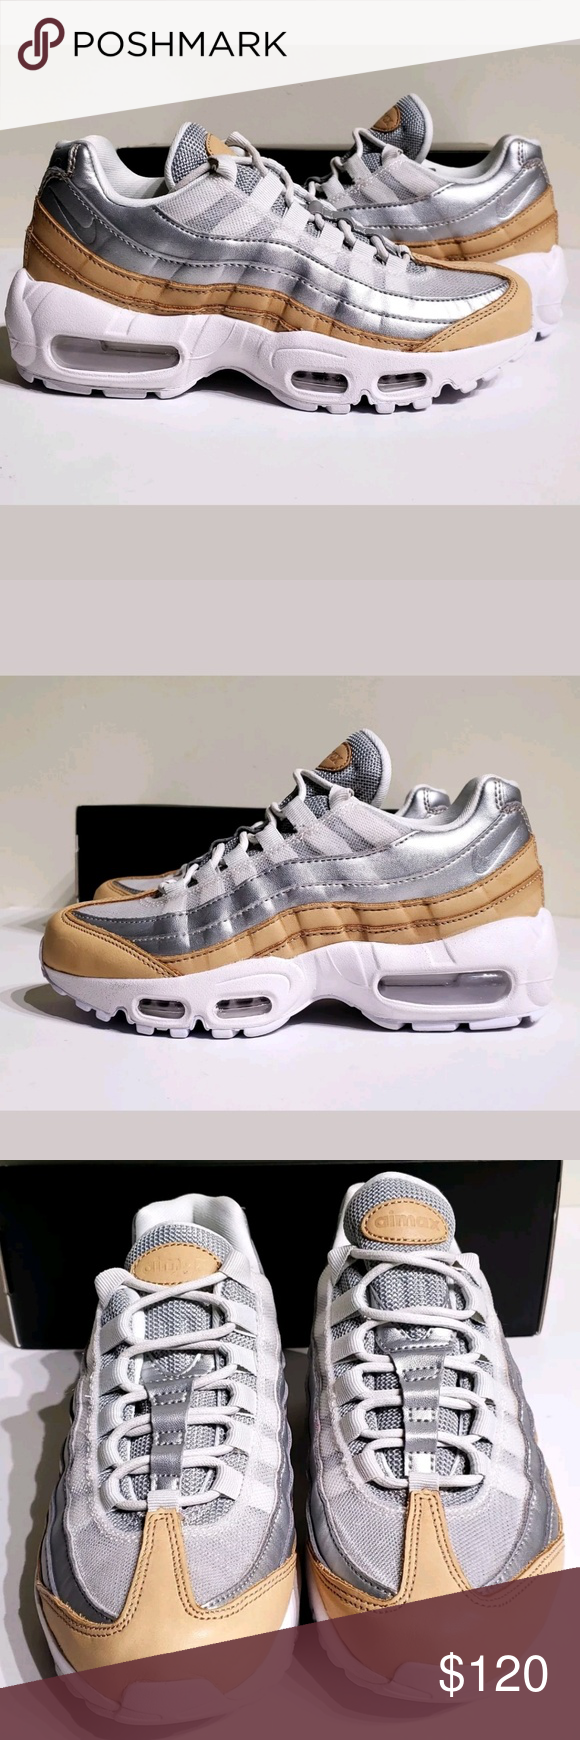 finest selection 4d43b 8b6f8 Nike Air Max 95 Special Edition Premium Shoes New with Box NO LID Women's Nike  Air Max 95 Special Edition Premium Shoes Style: AH8697-002 Women's Size 5  ...